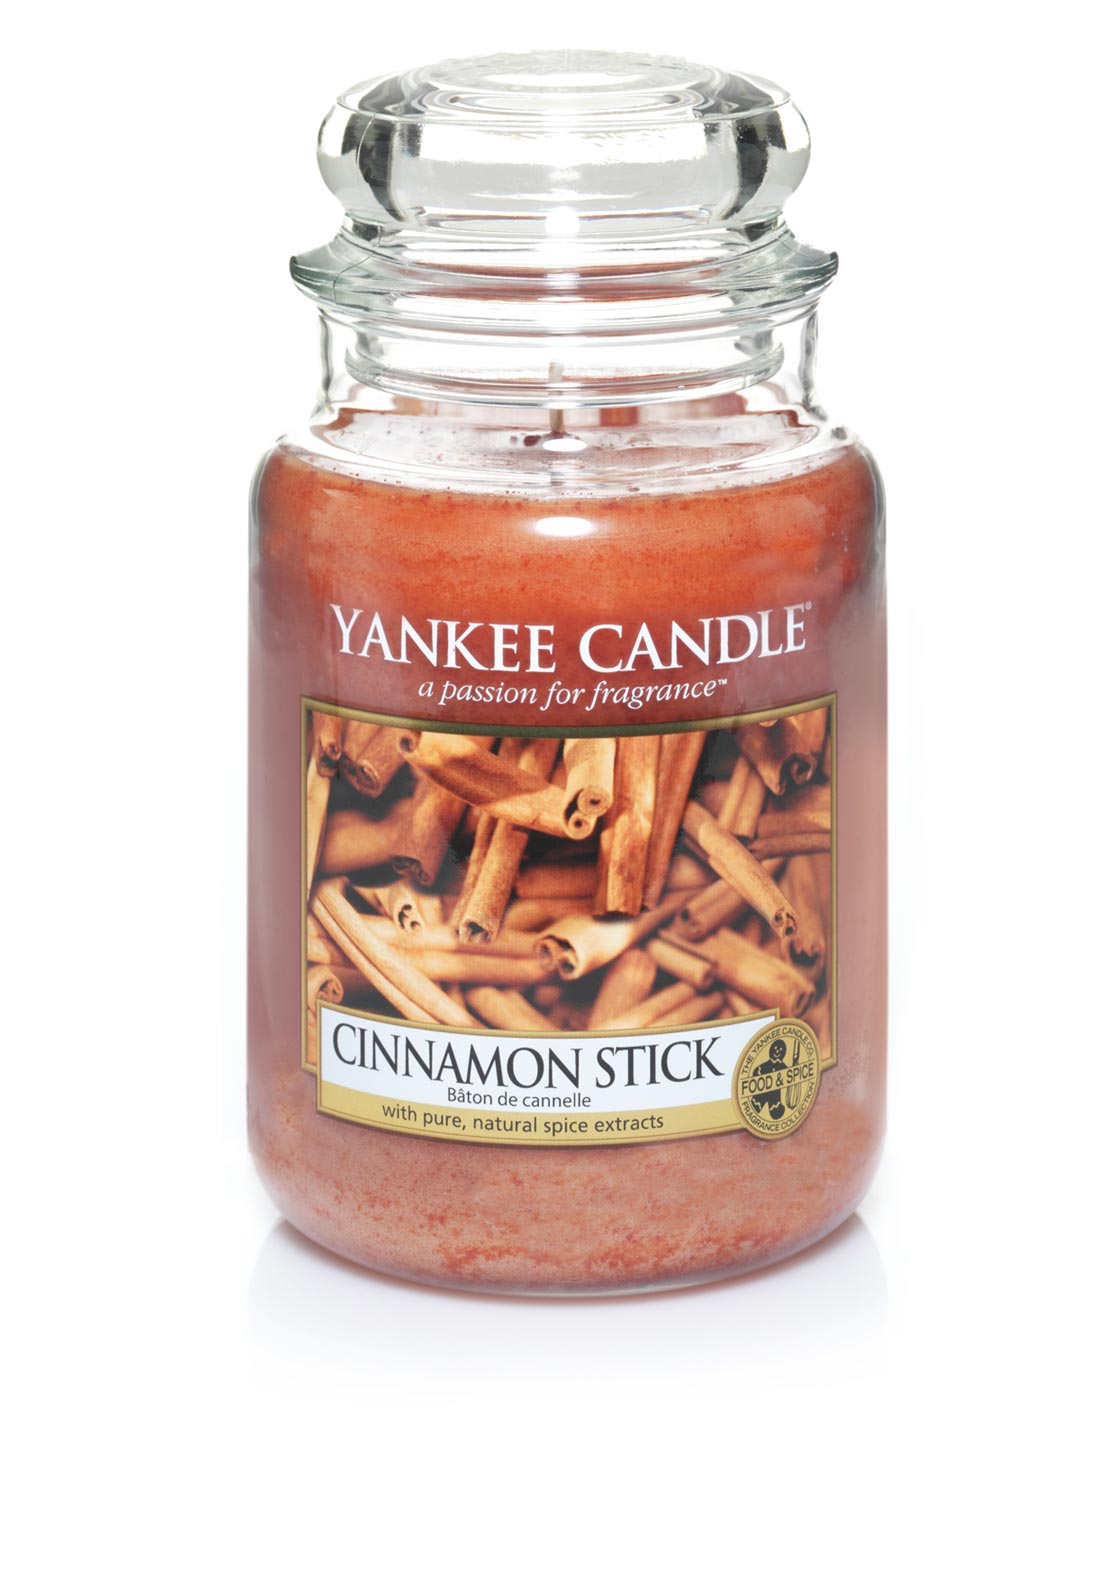 Yankee Candle Large Classic Jar, Cinnamon Stick